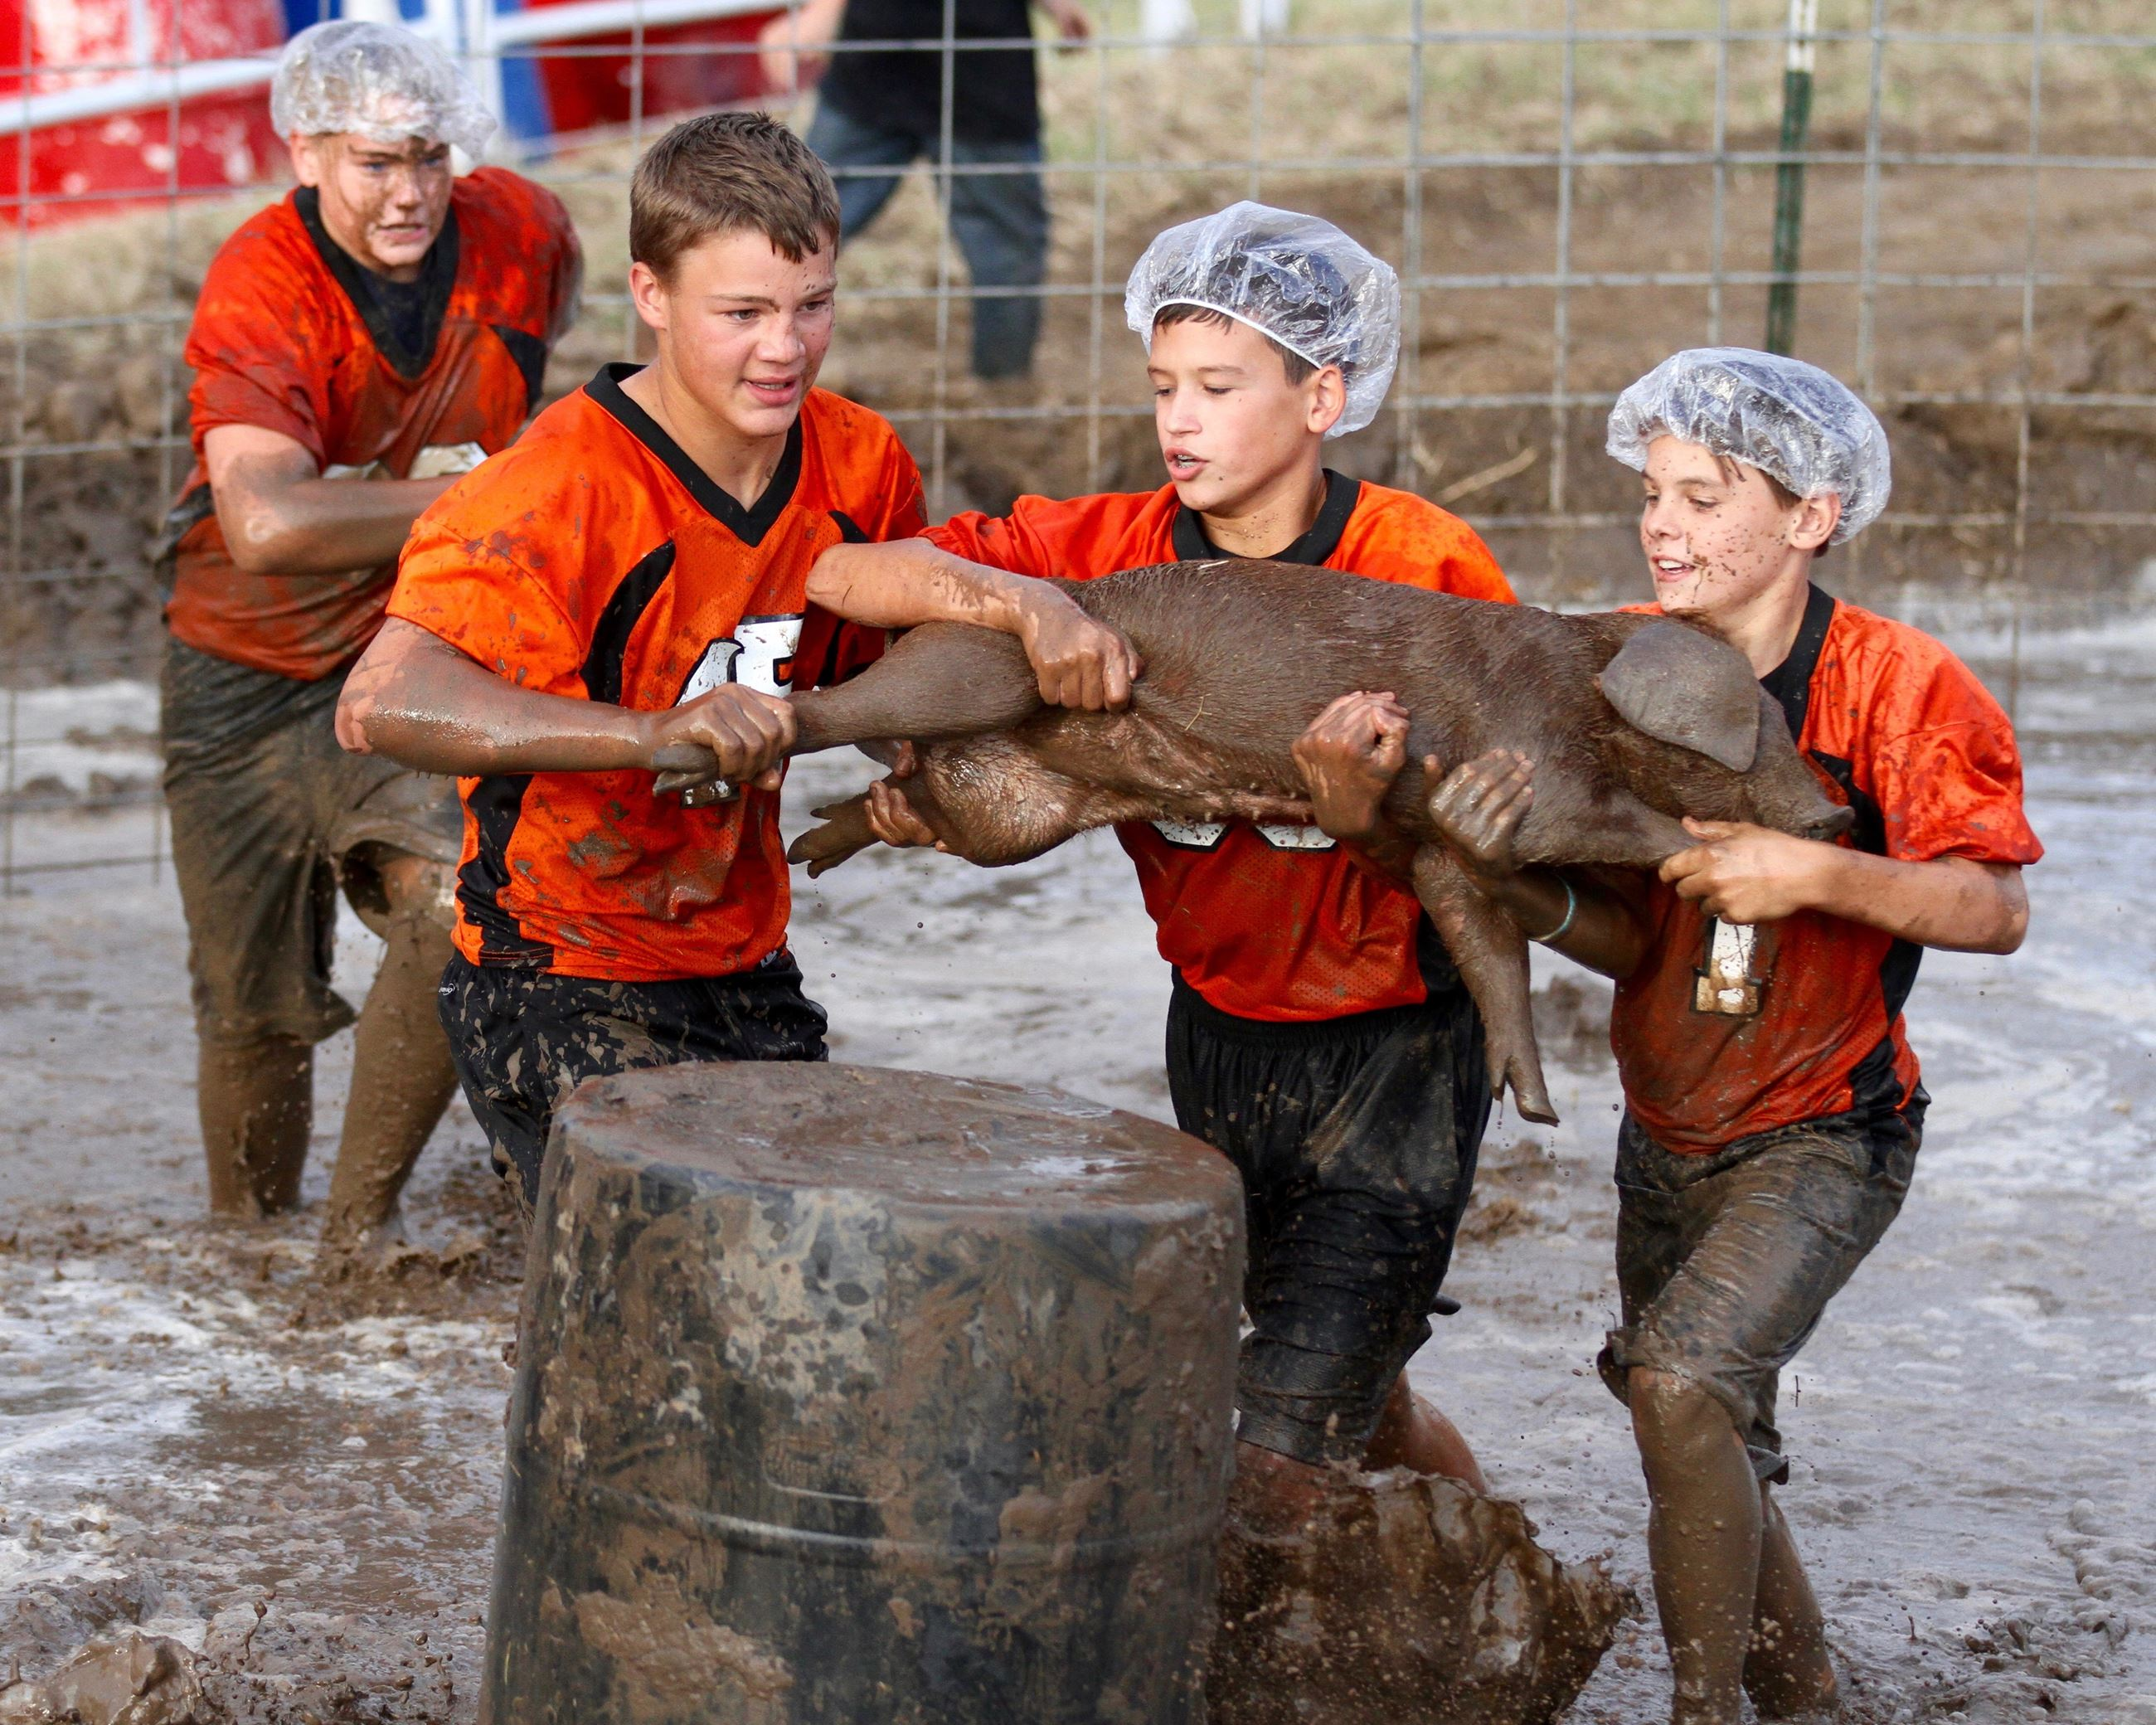 Four muddy boys wrestling a pig